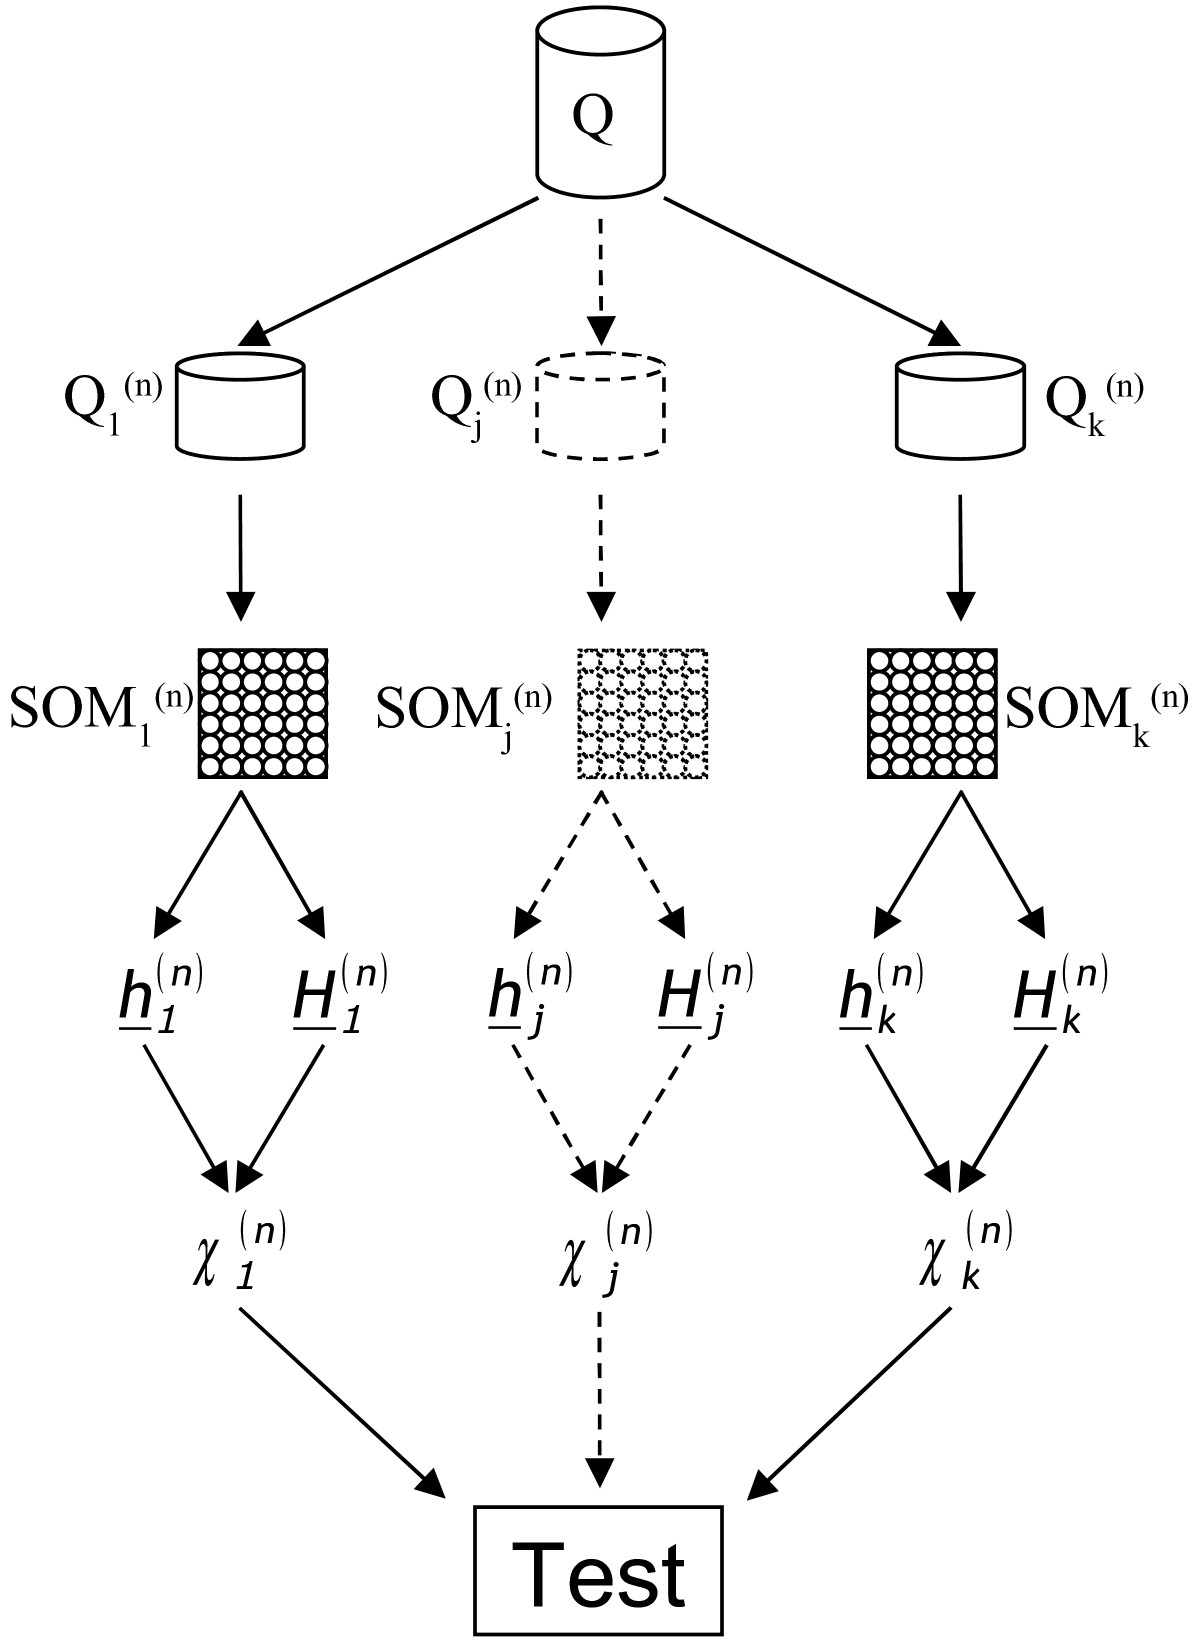 https://static-content.springer.com/image/art%3A10.1186%2F1471-2105-12-158/MediaObjects/12859_2010_Article_4550_Fig2_HTML.jpg